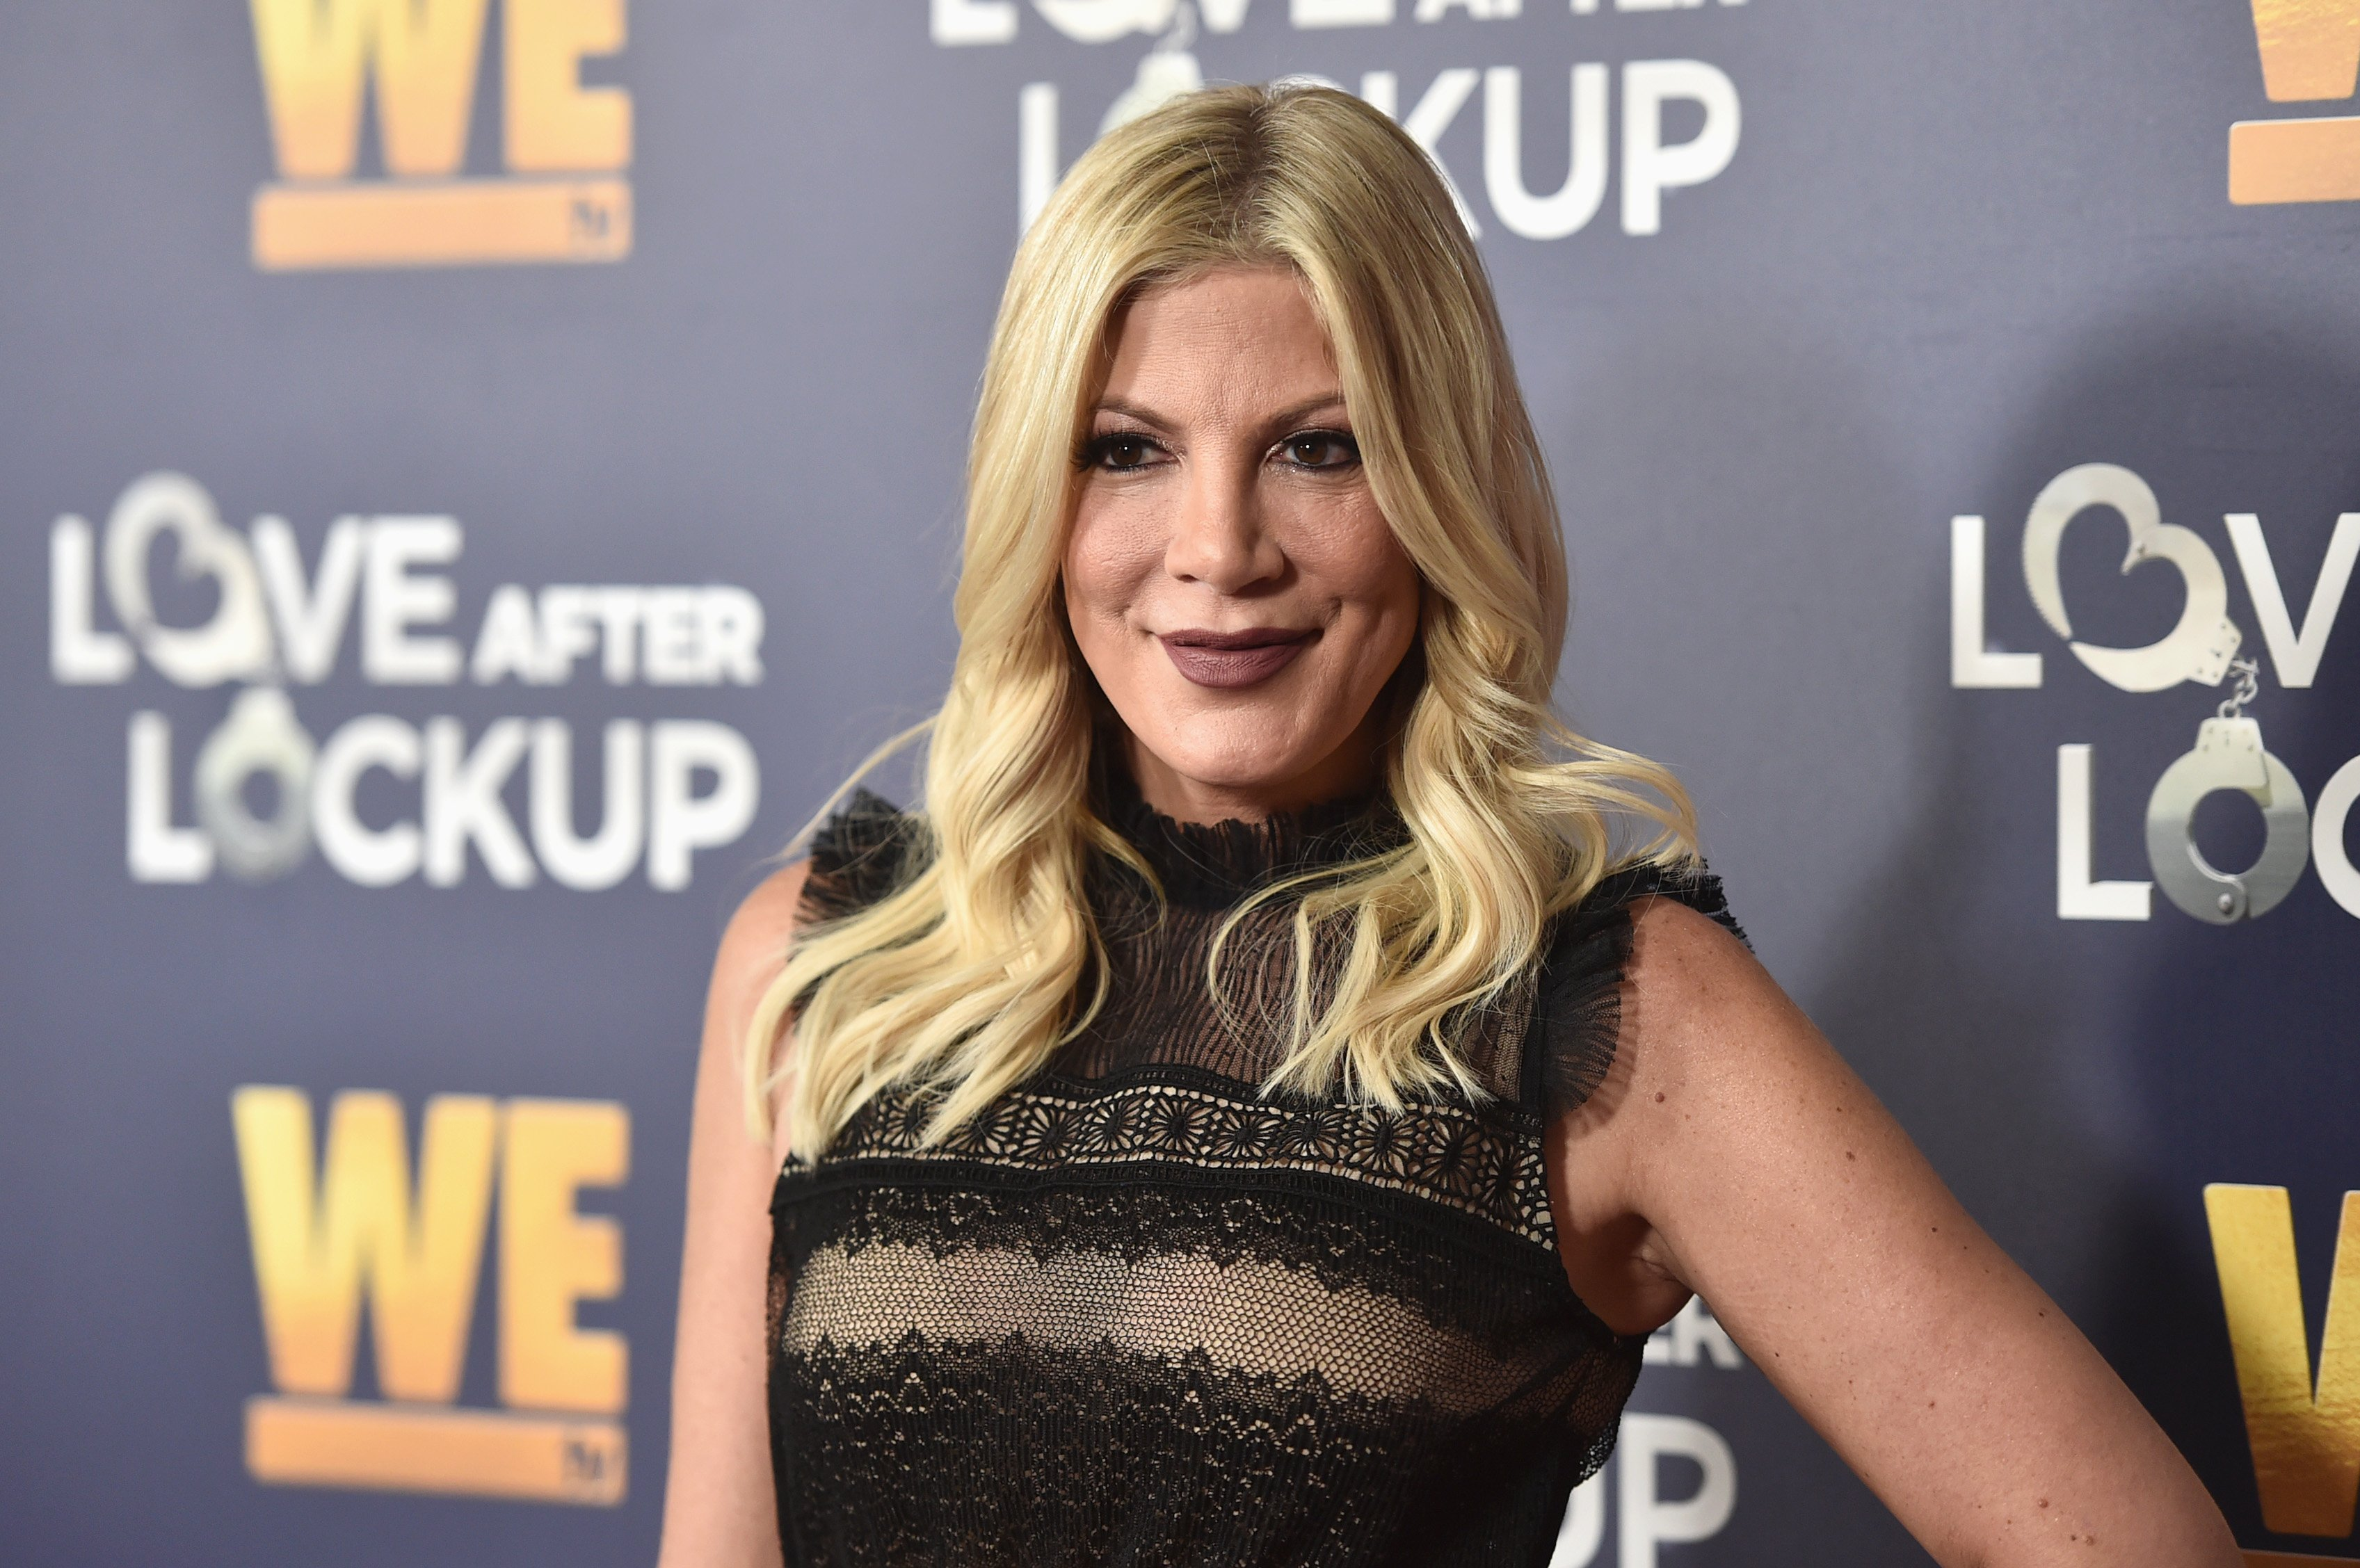 """Tori Spelling attends WE tv celebrates the return of """"Love After Lockup"""" with panel, """"Real Love: Relationship Reality TV's Past, Present & Future,"""" on December 11, 2018 